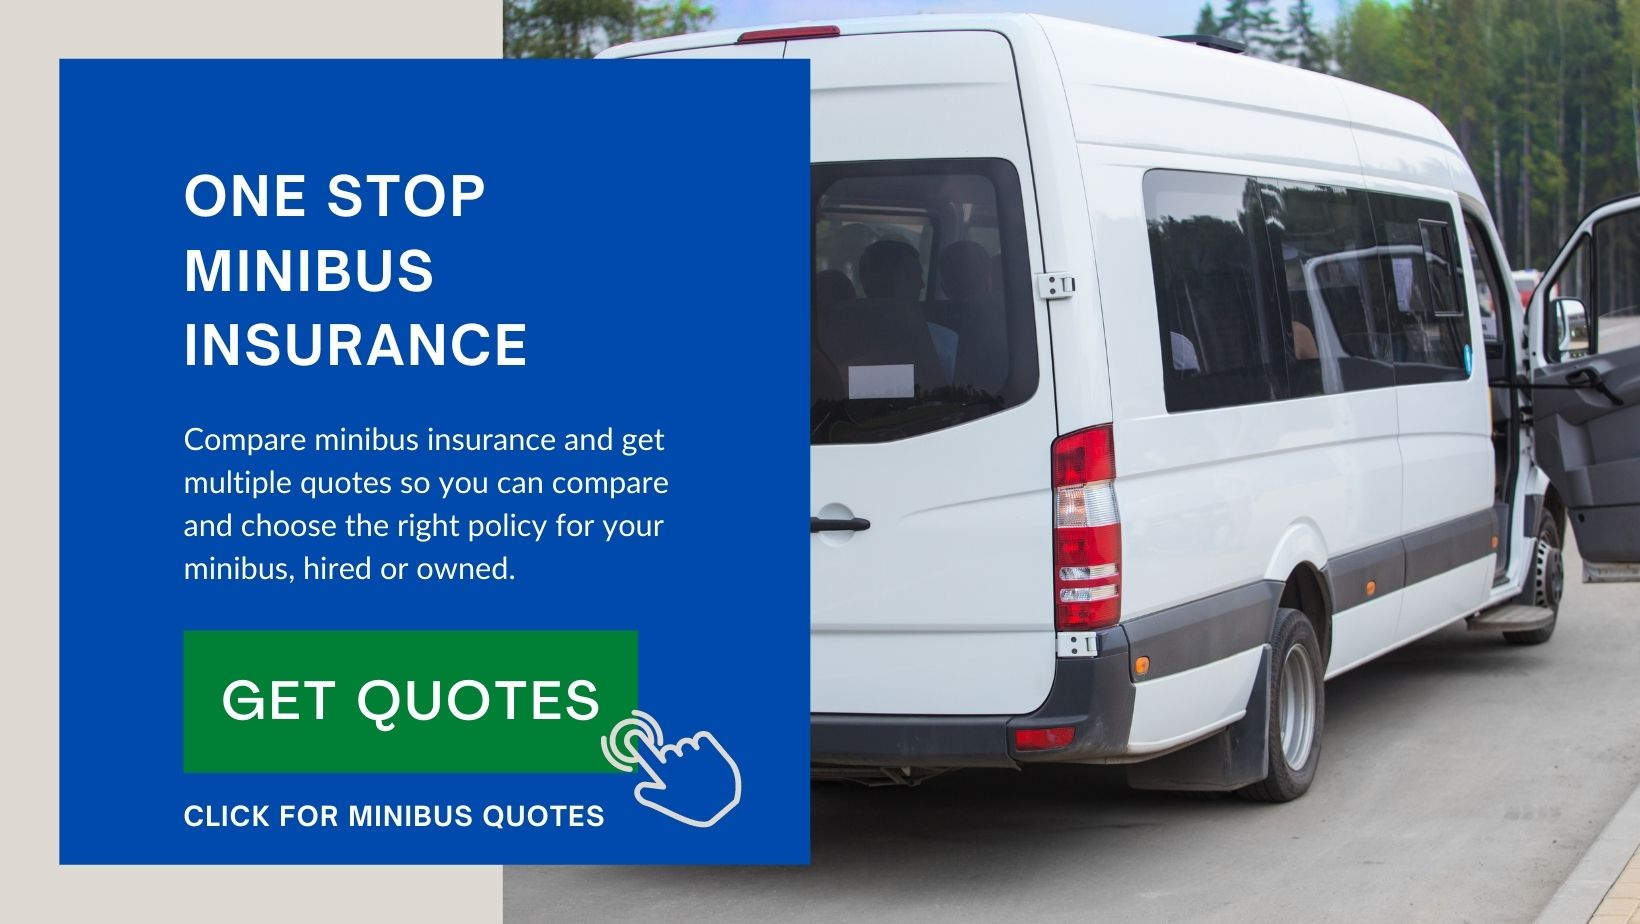 Compare quotes on minibus insurance for private or business use and fast!